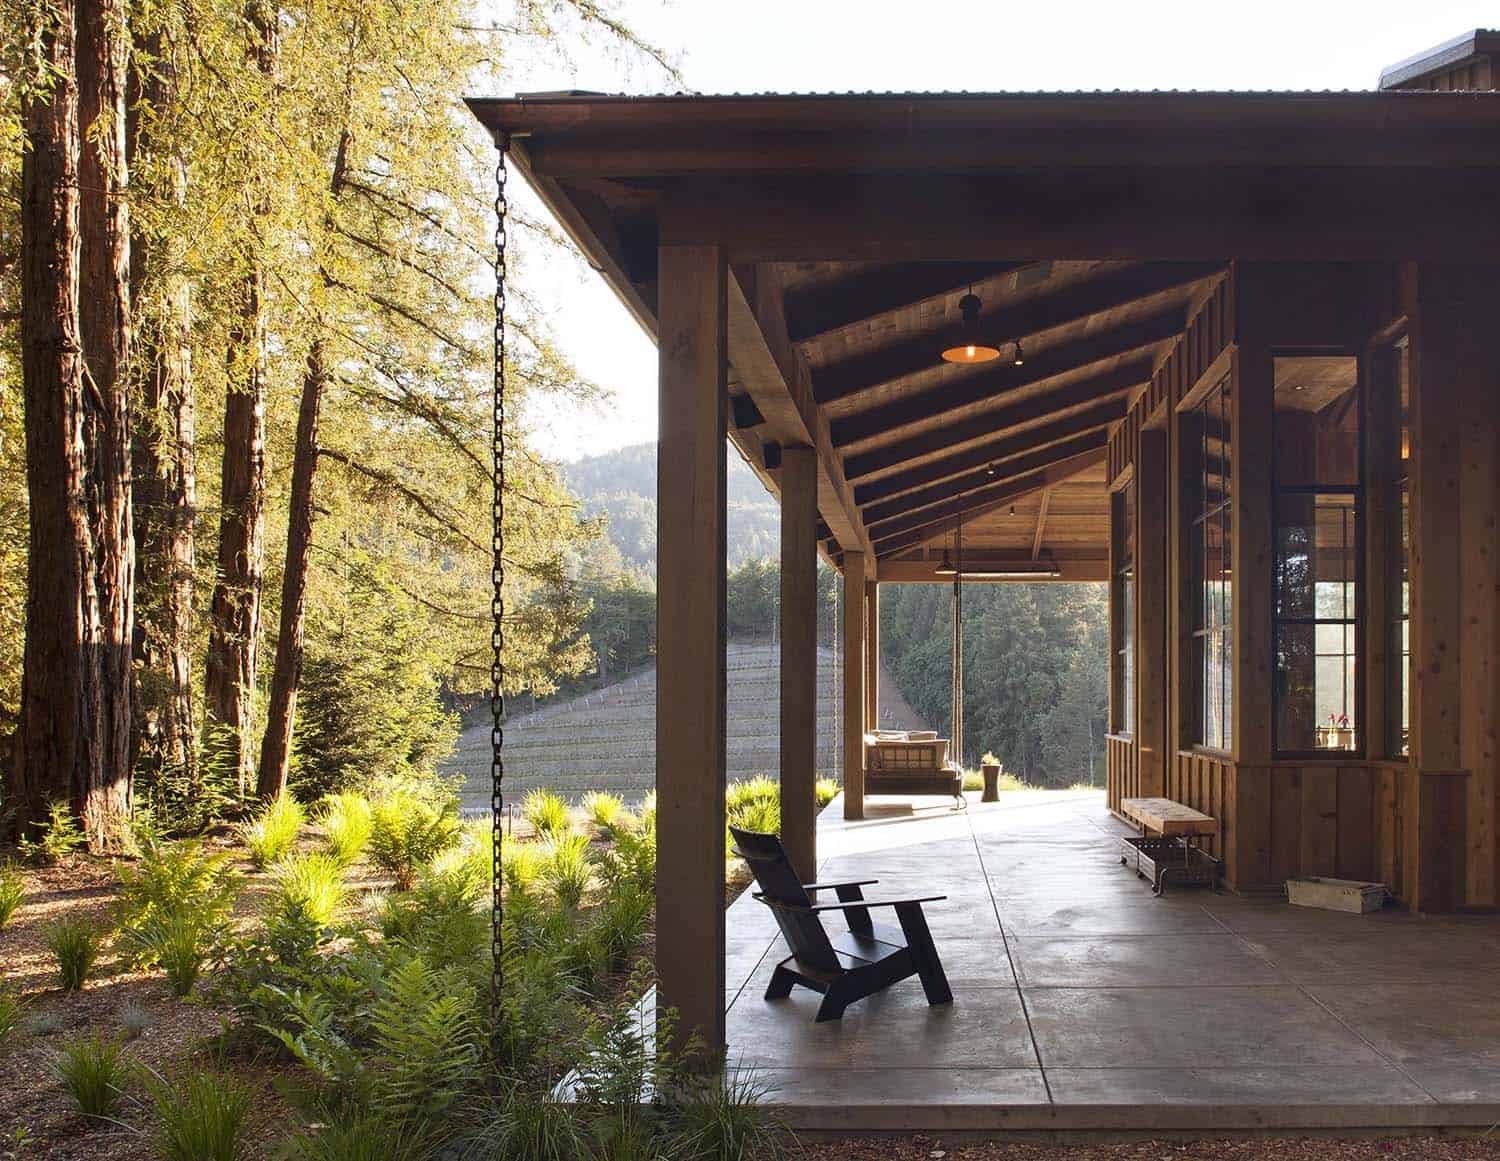 The home enjoys a wrap-around porch with views of the vines as well as looking out into the serene forest.